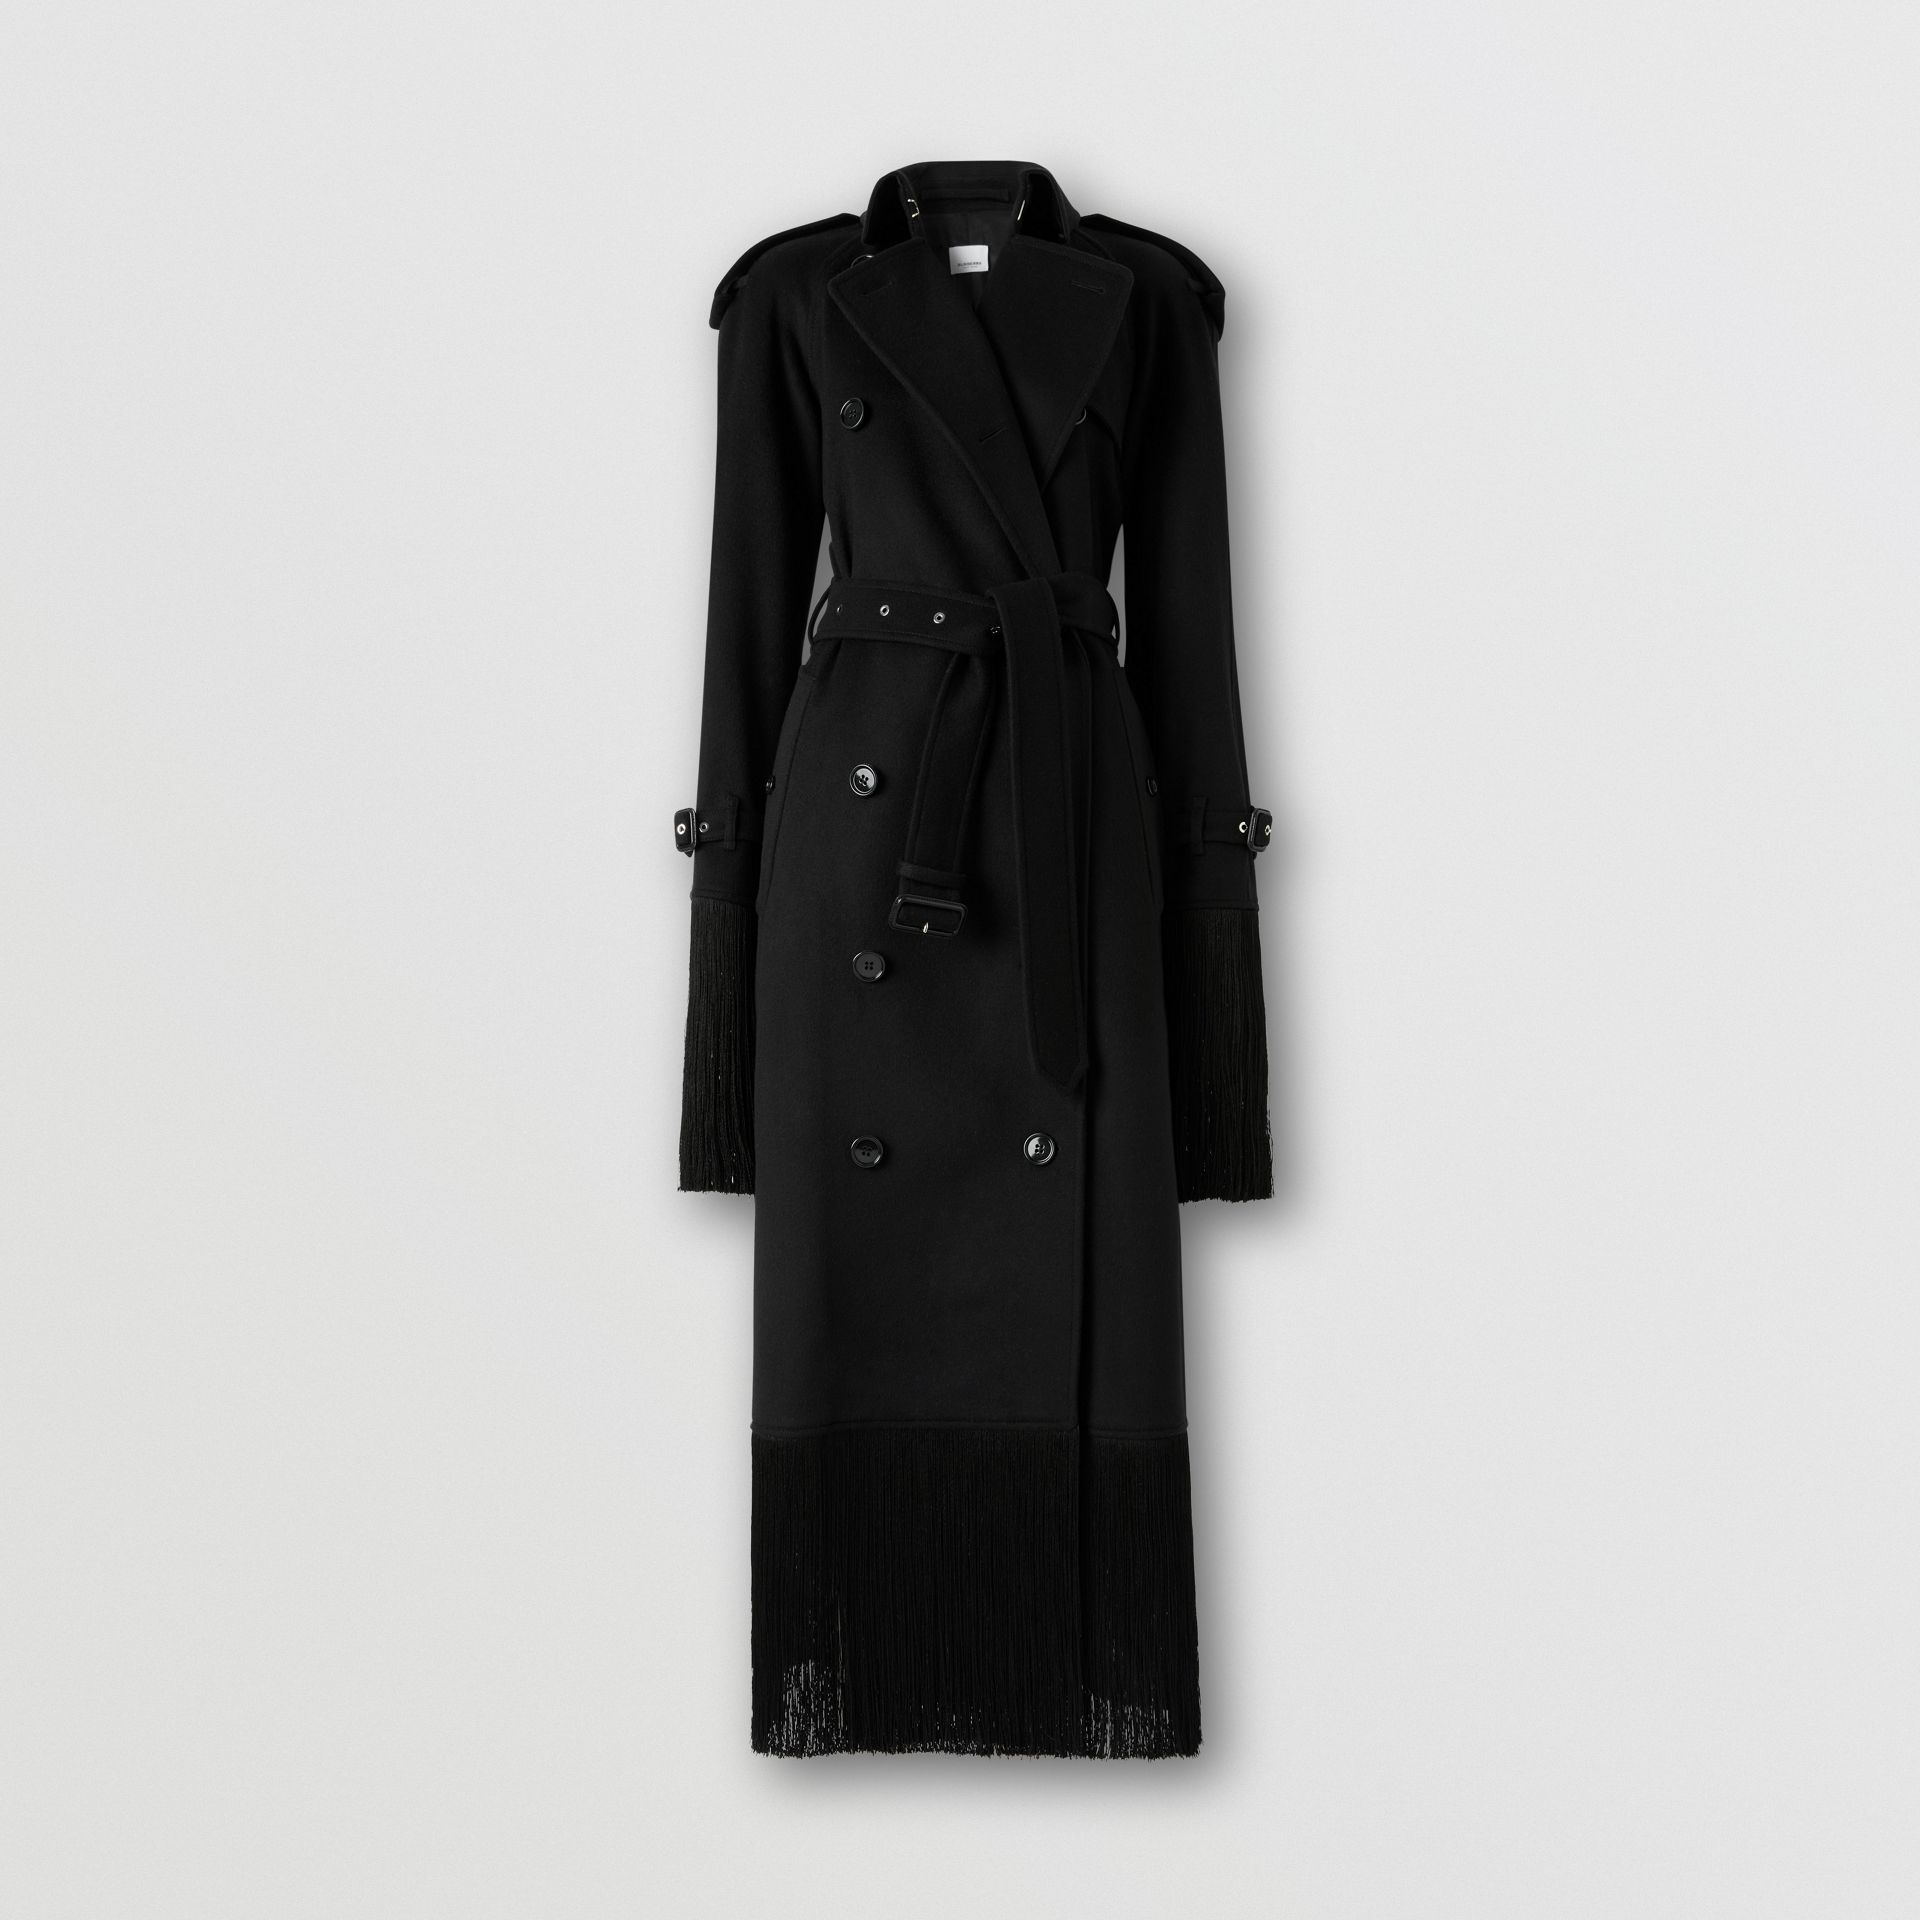 Fringed Wool Cashmere Trench Coat in Black - Women | Burberry - gallery image 3